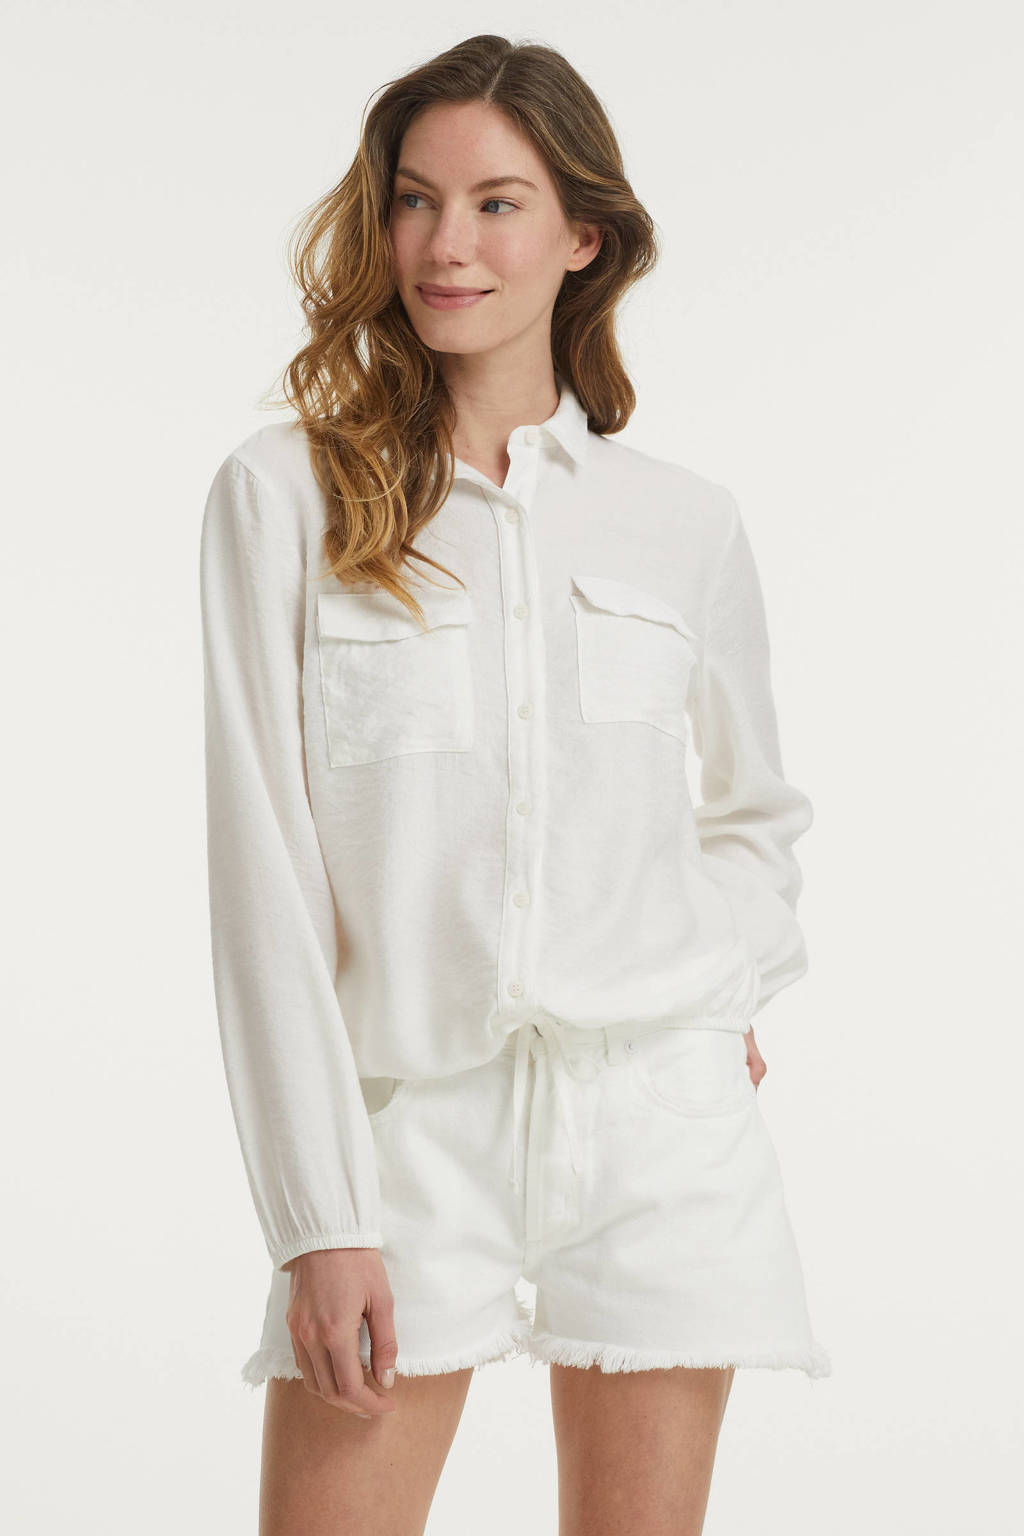 FREEQUENT top FQANNEY-SH offwhite, Offwhite